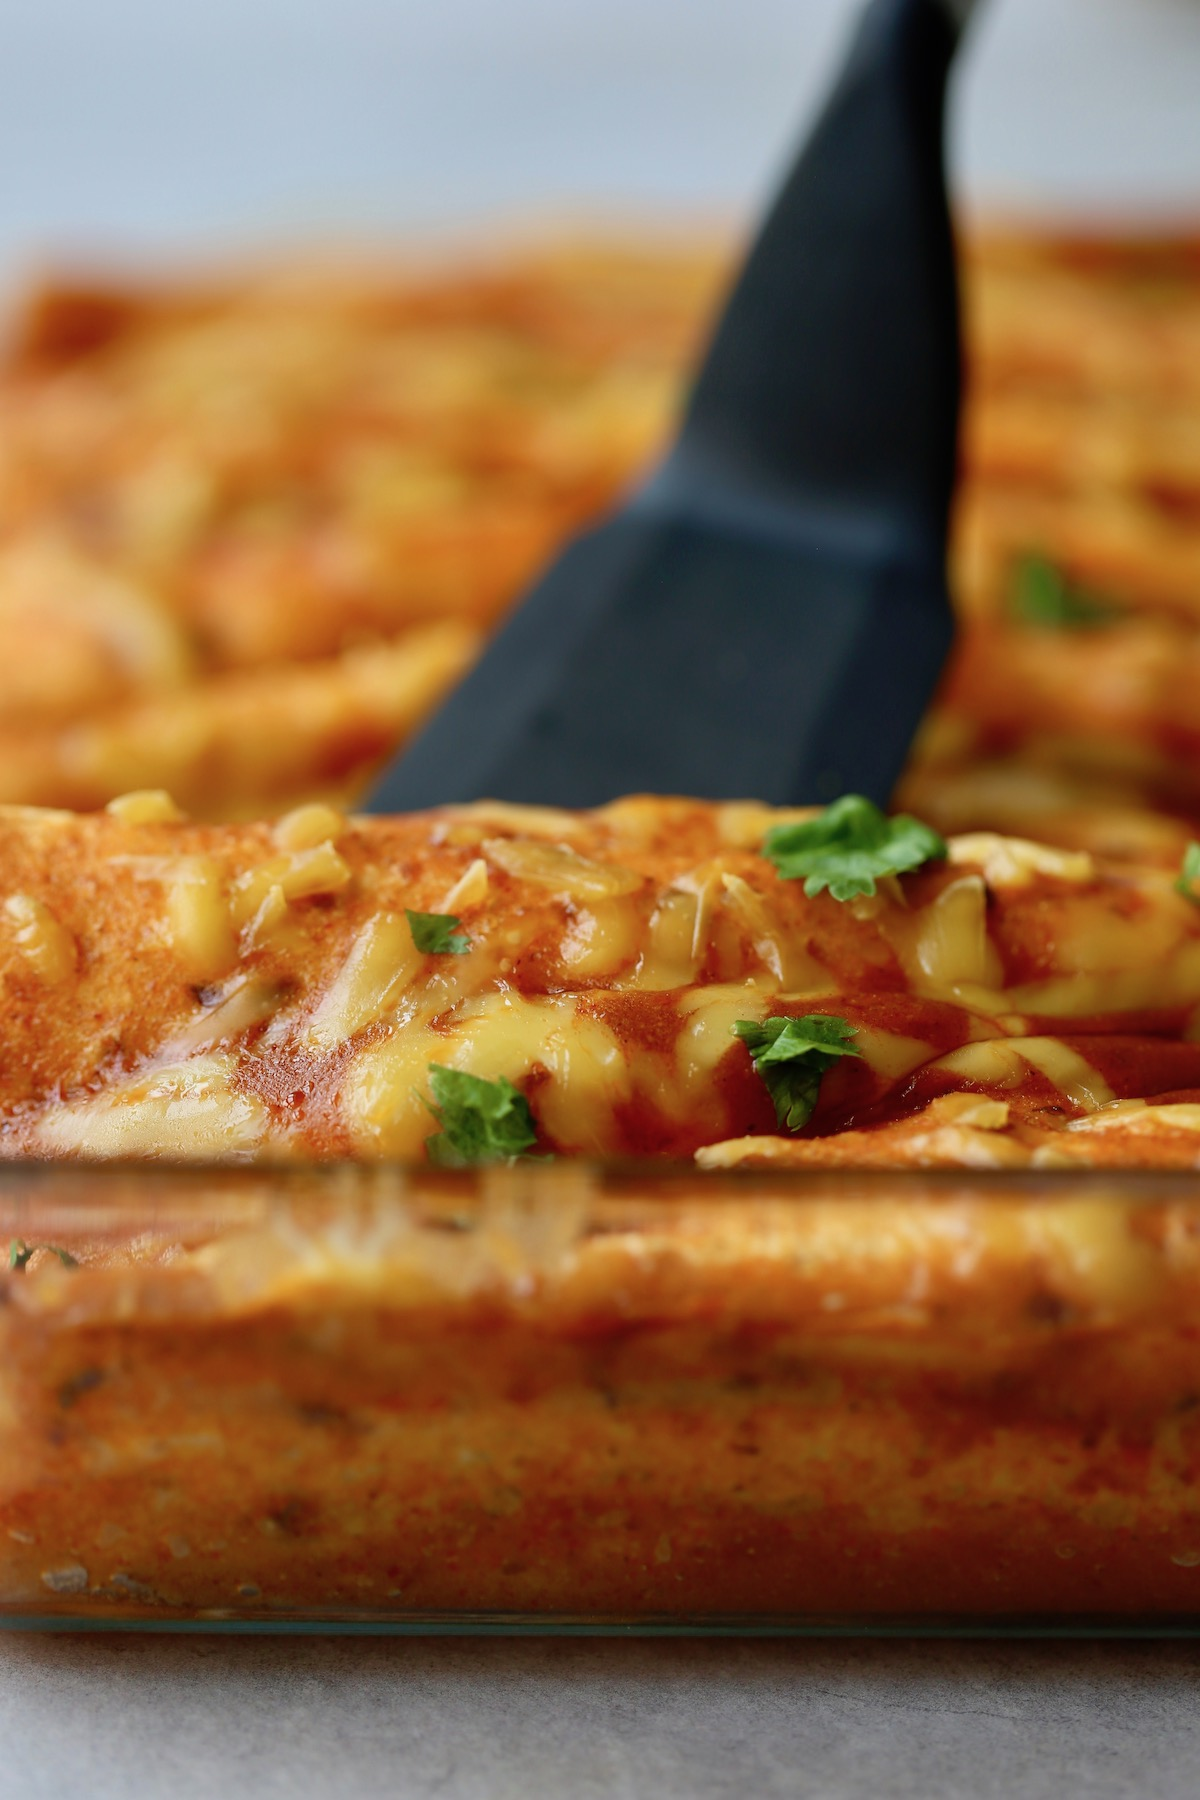 a spatula scooping up a serving of vegan enchiladas